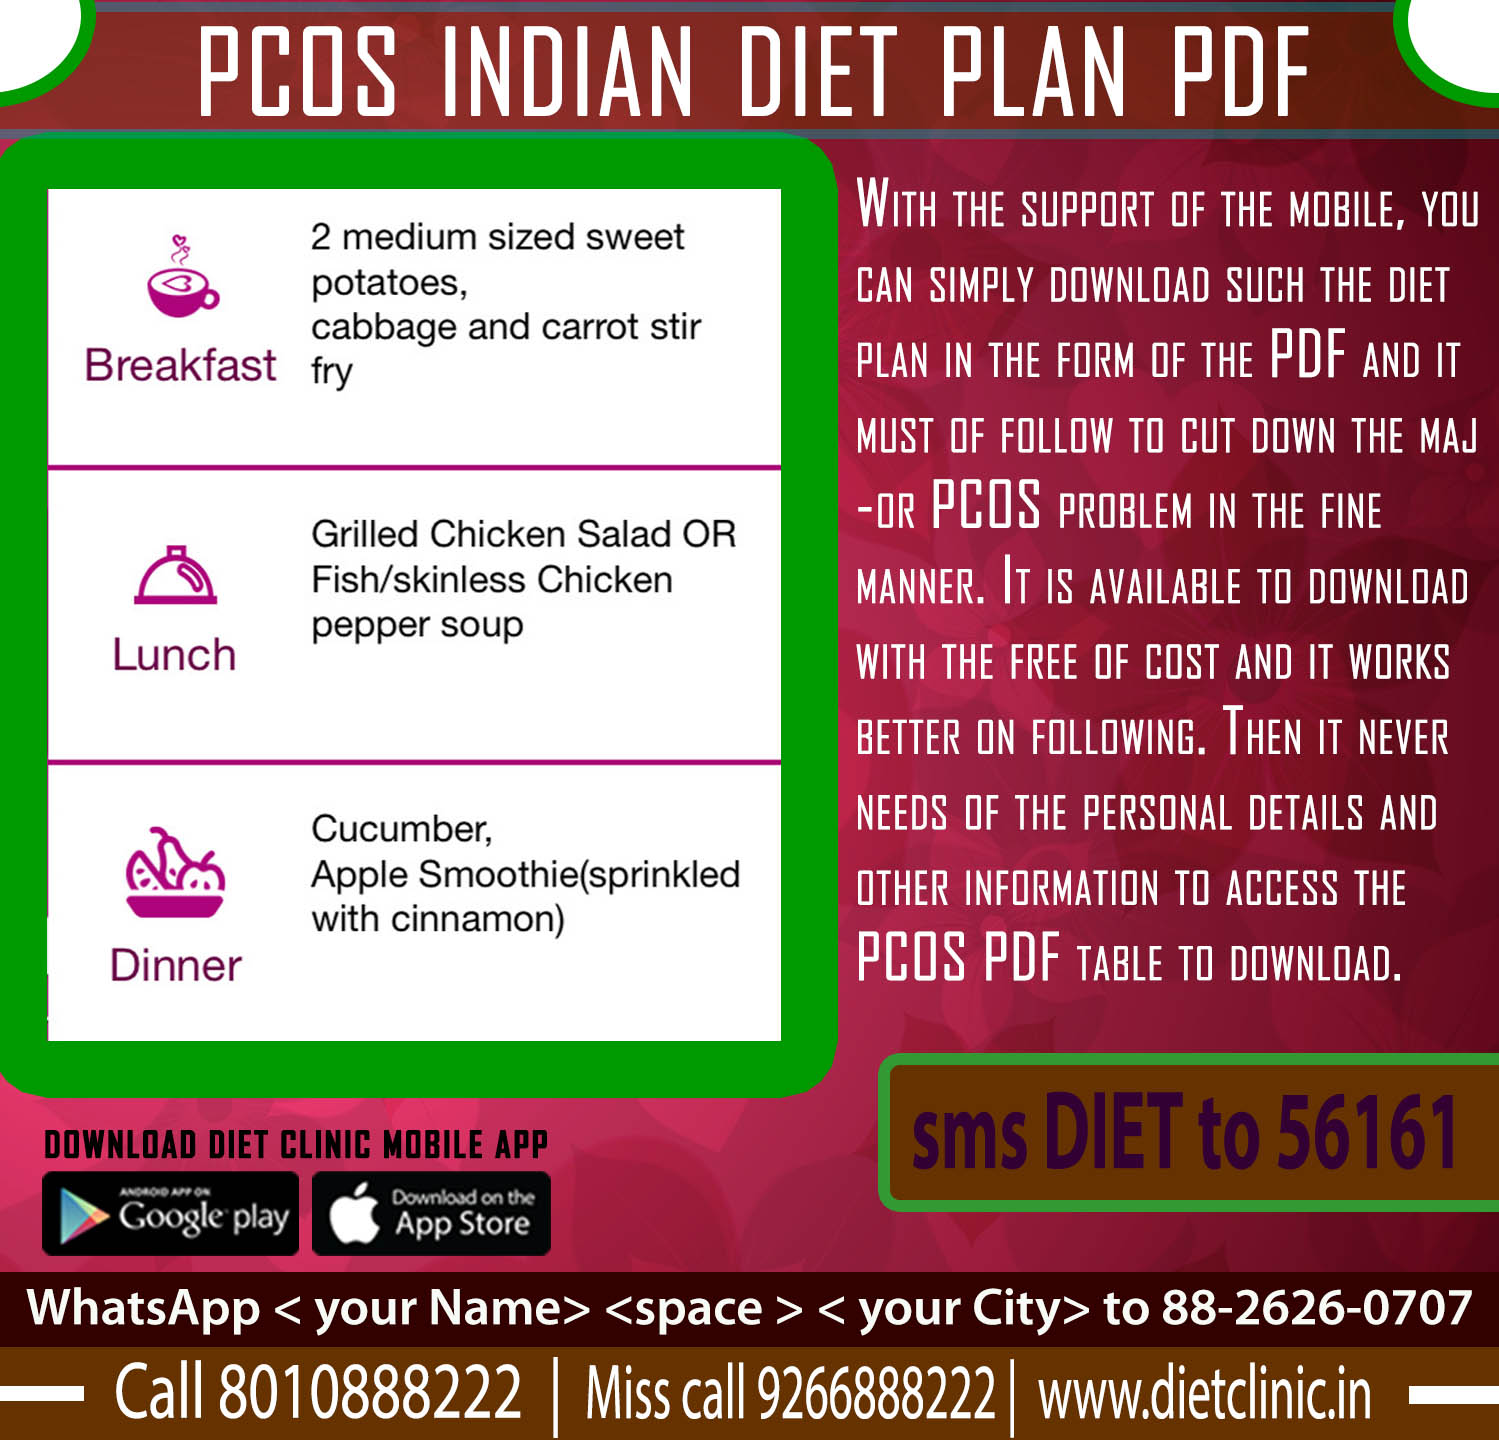 Diet Plan For Weight Loss Pcos - Diet Plan